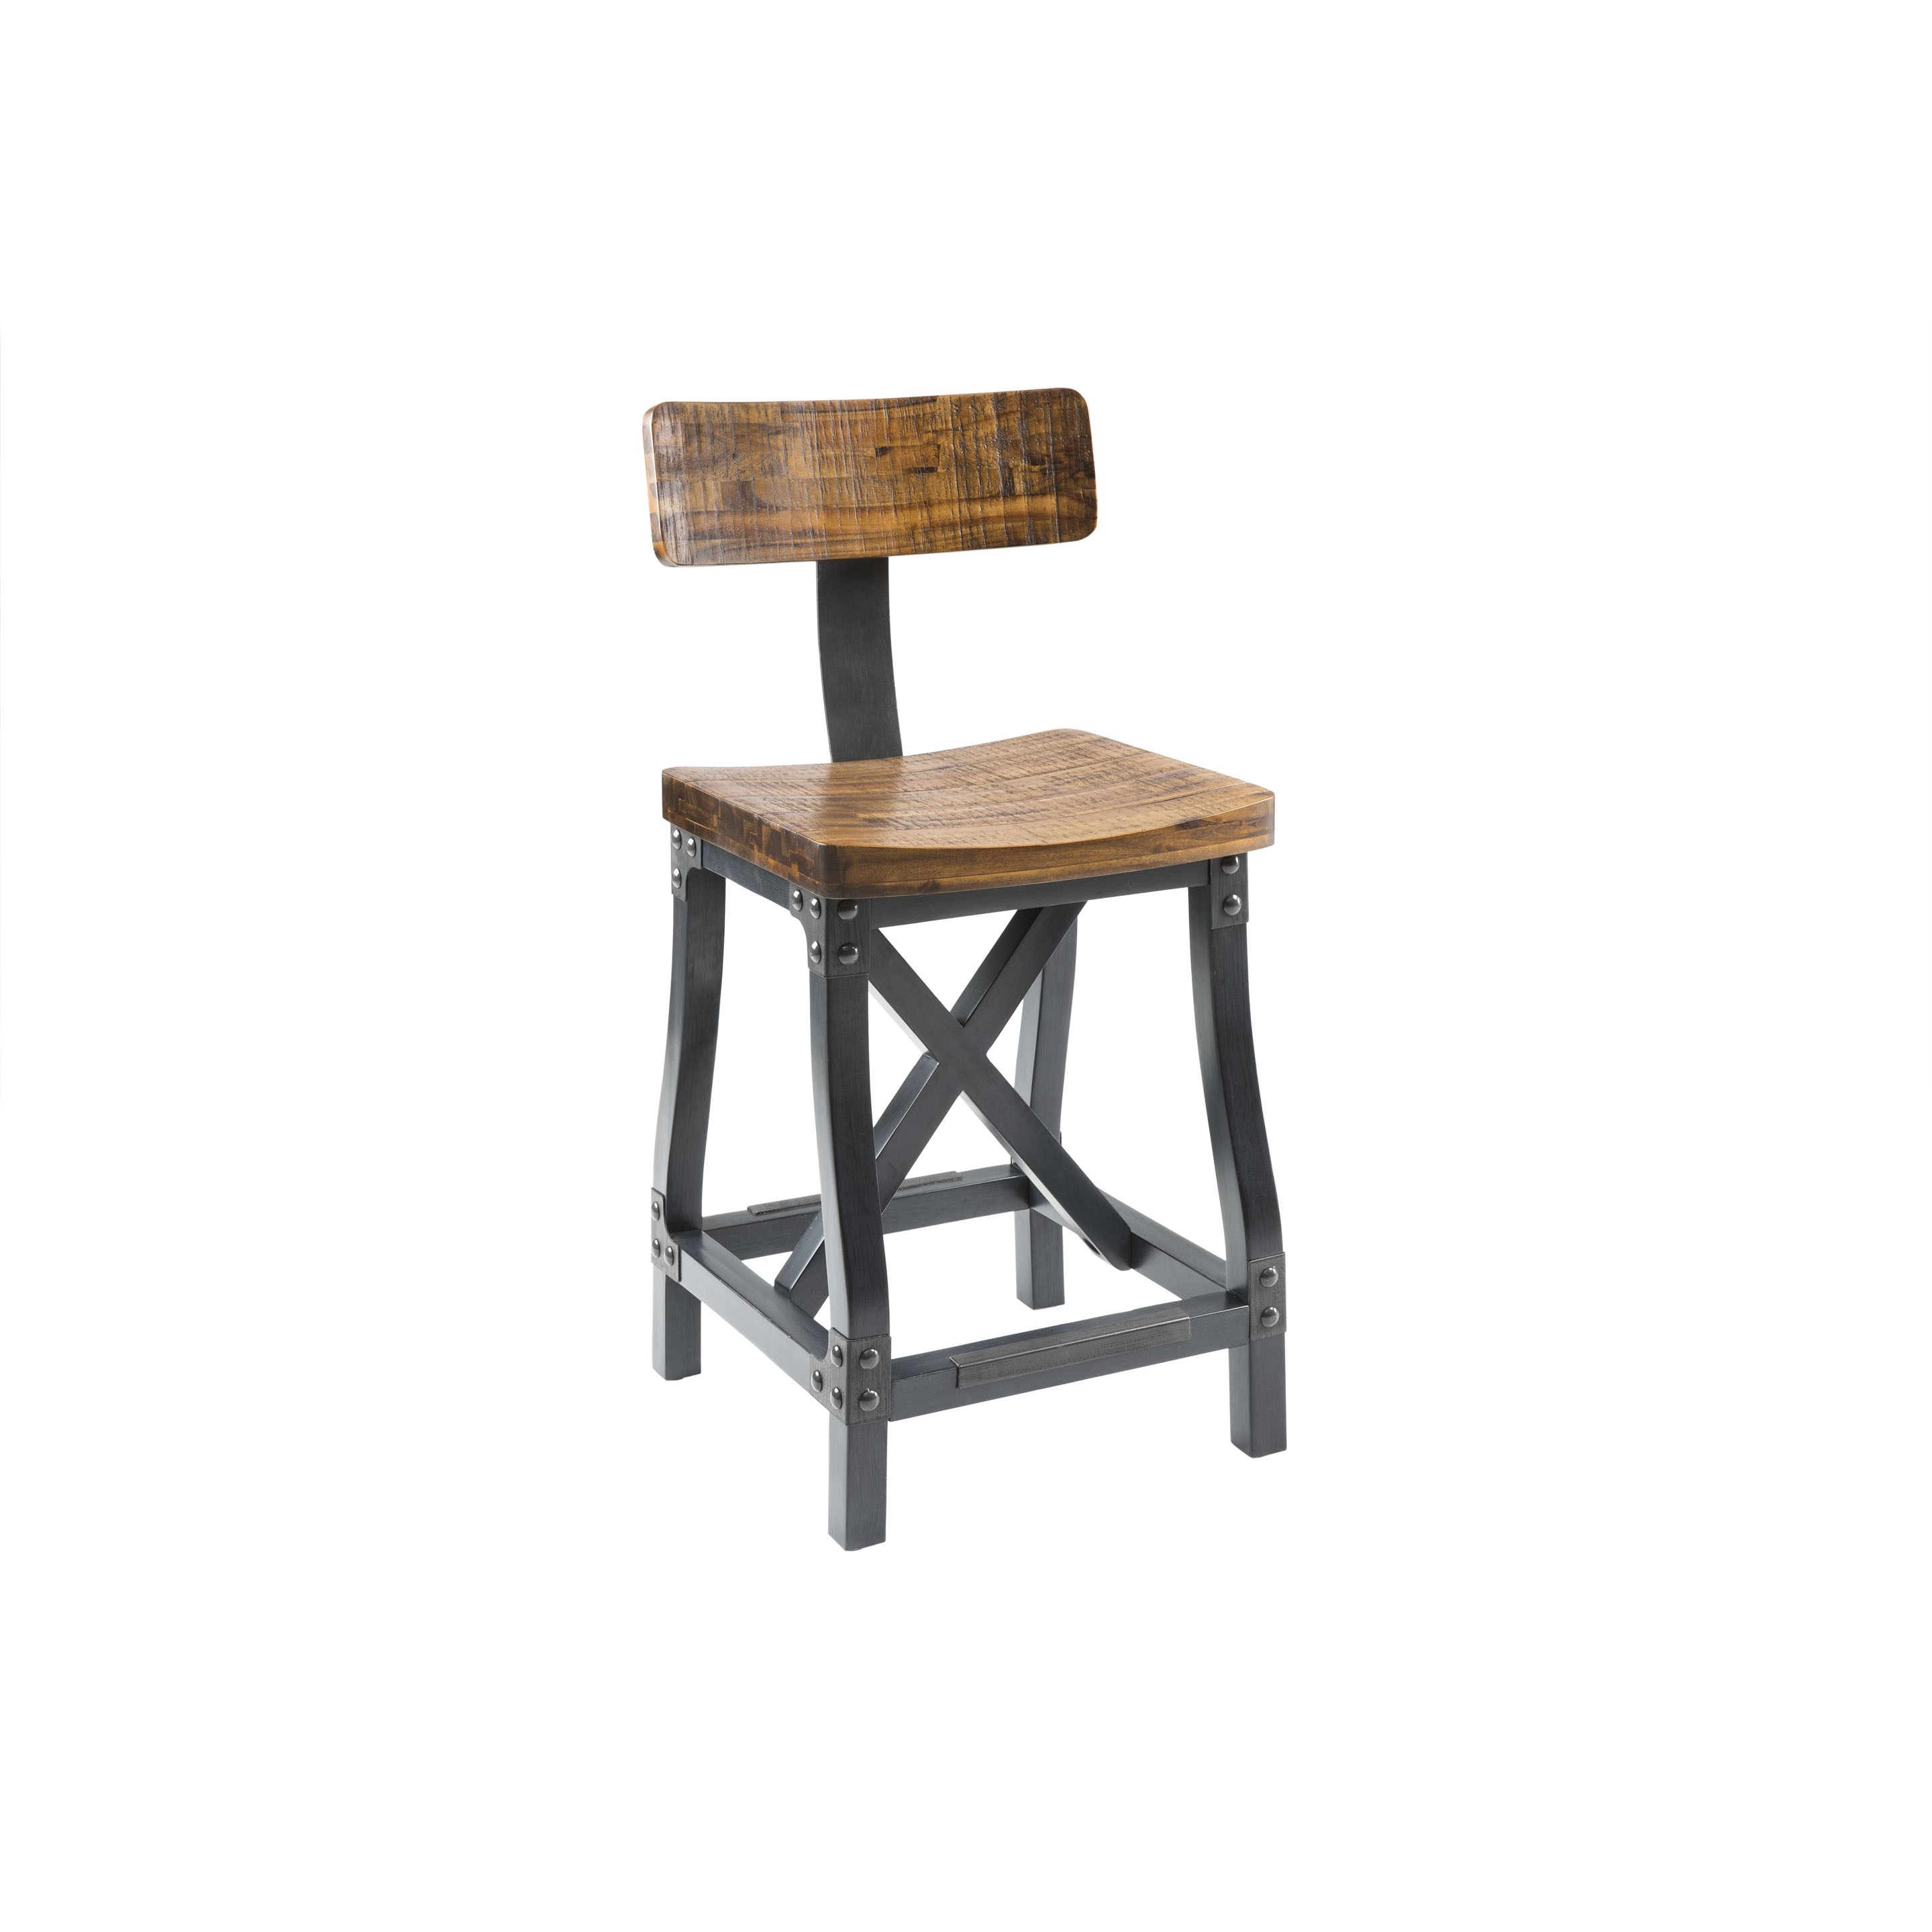 of stylish on sale sense stool bar provide authenticity a stools height counter pin